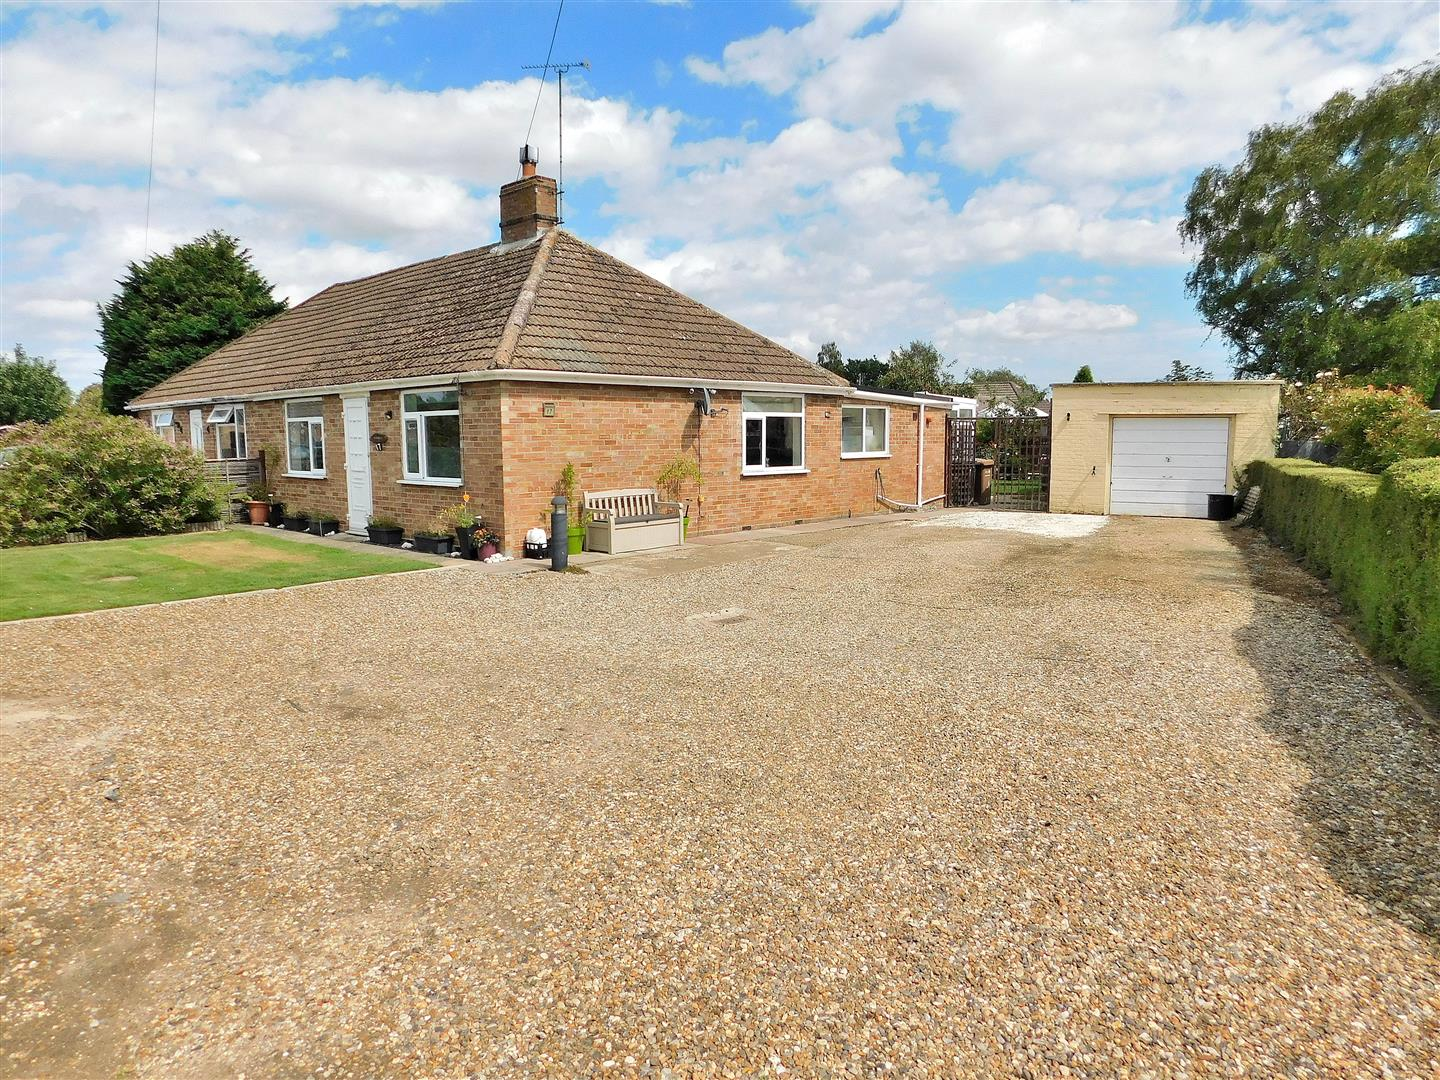 2 bed semi-detached house for sale in Coronation Road, King's Lynn - Property Image 1